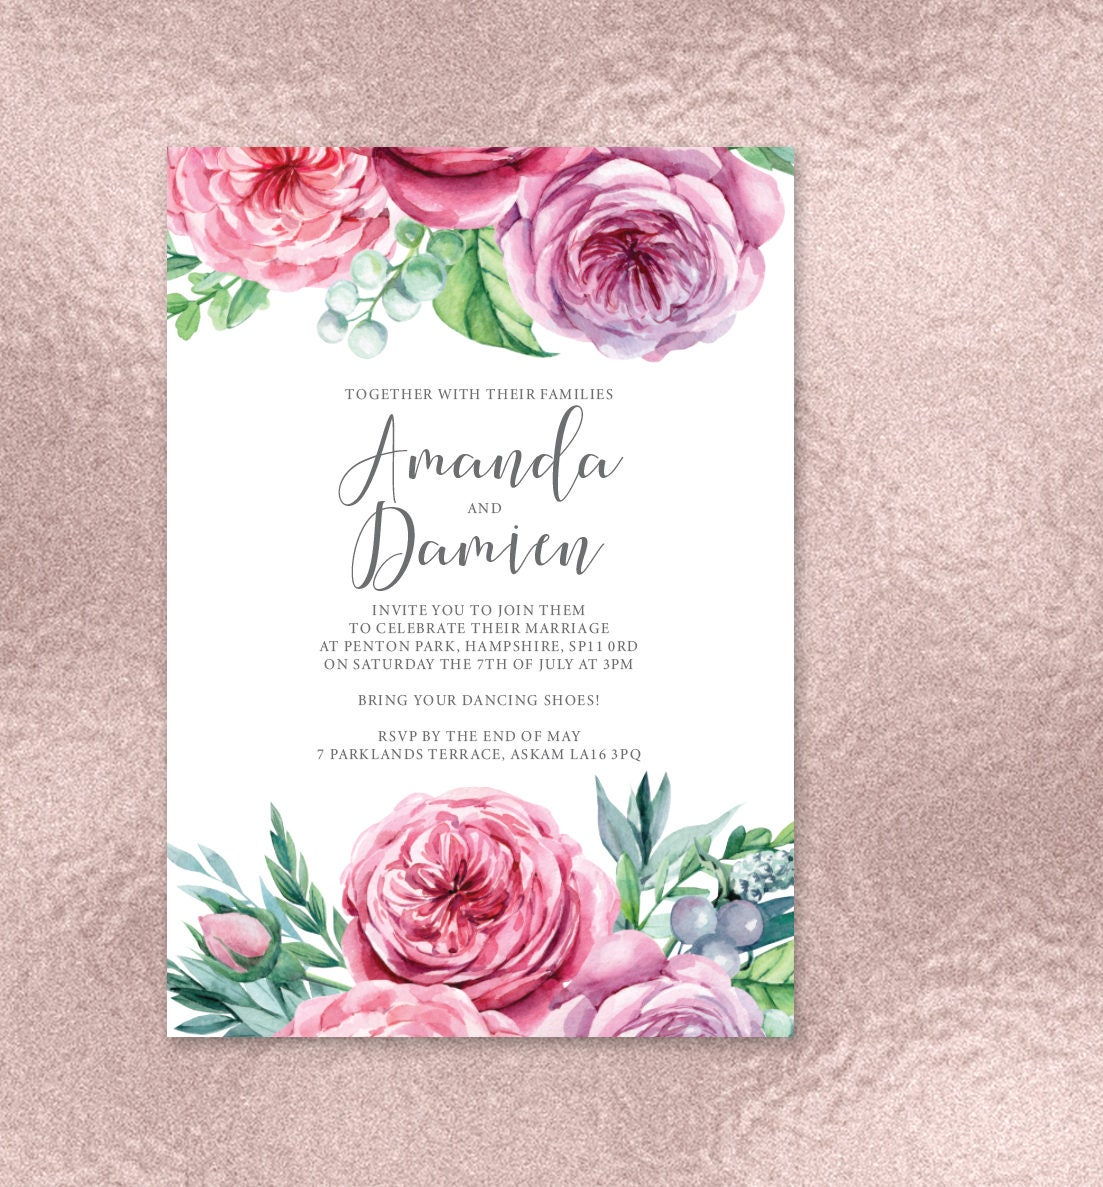 Gorgeously floral wedding invitations with English Country Garden ...